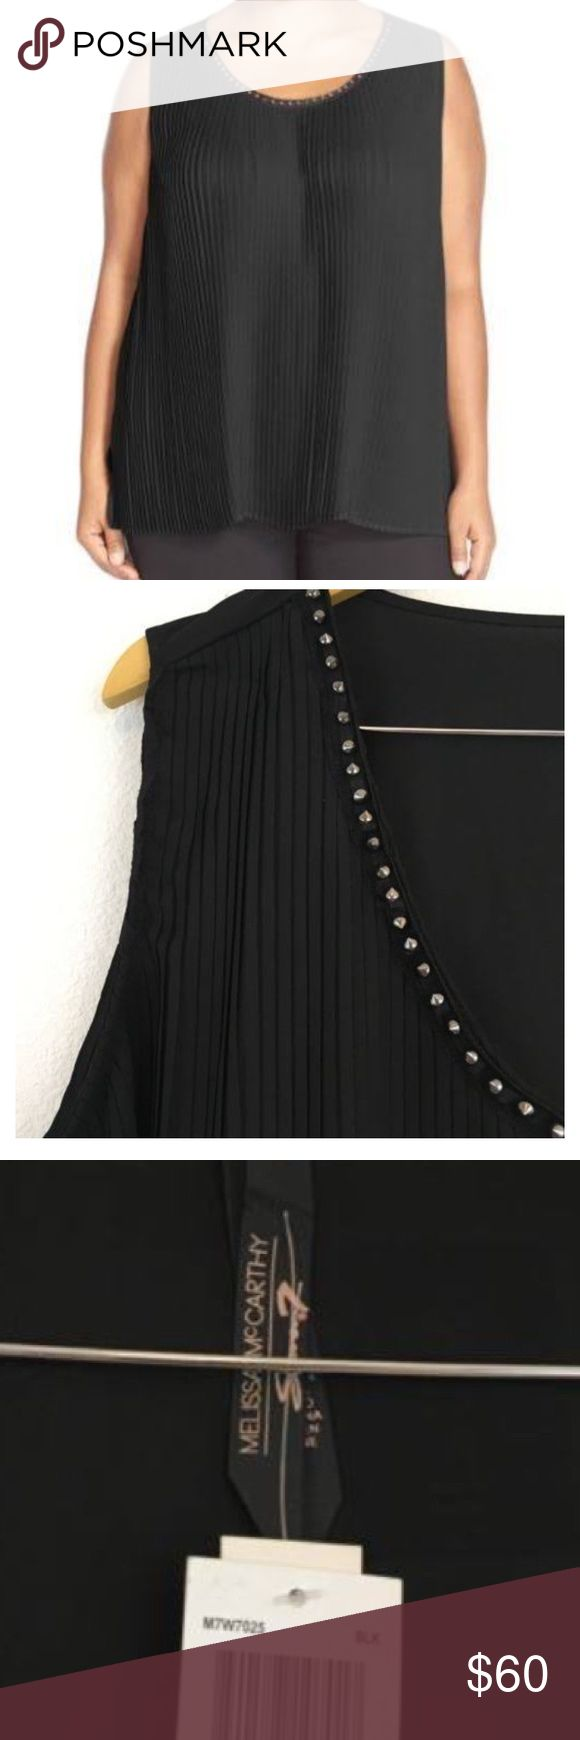 NWTs Melissa McCarthy Seven7 Black Studded Tank 2X Brand New with tags! Melissa McCarthy Seven7 Black Studded Tank Size 2X. Purchased for 30 and lost receipt so can't return. Normally $84. Love this but runs a bit on the larger 2X side. Very flattering and has ample room in back and front. Looks great over skinny jeans and wedges going out or casual weekend attire. Save 20% on bundles of two or more! Melissa McCarthy Tops Tank Tops